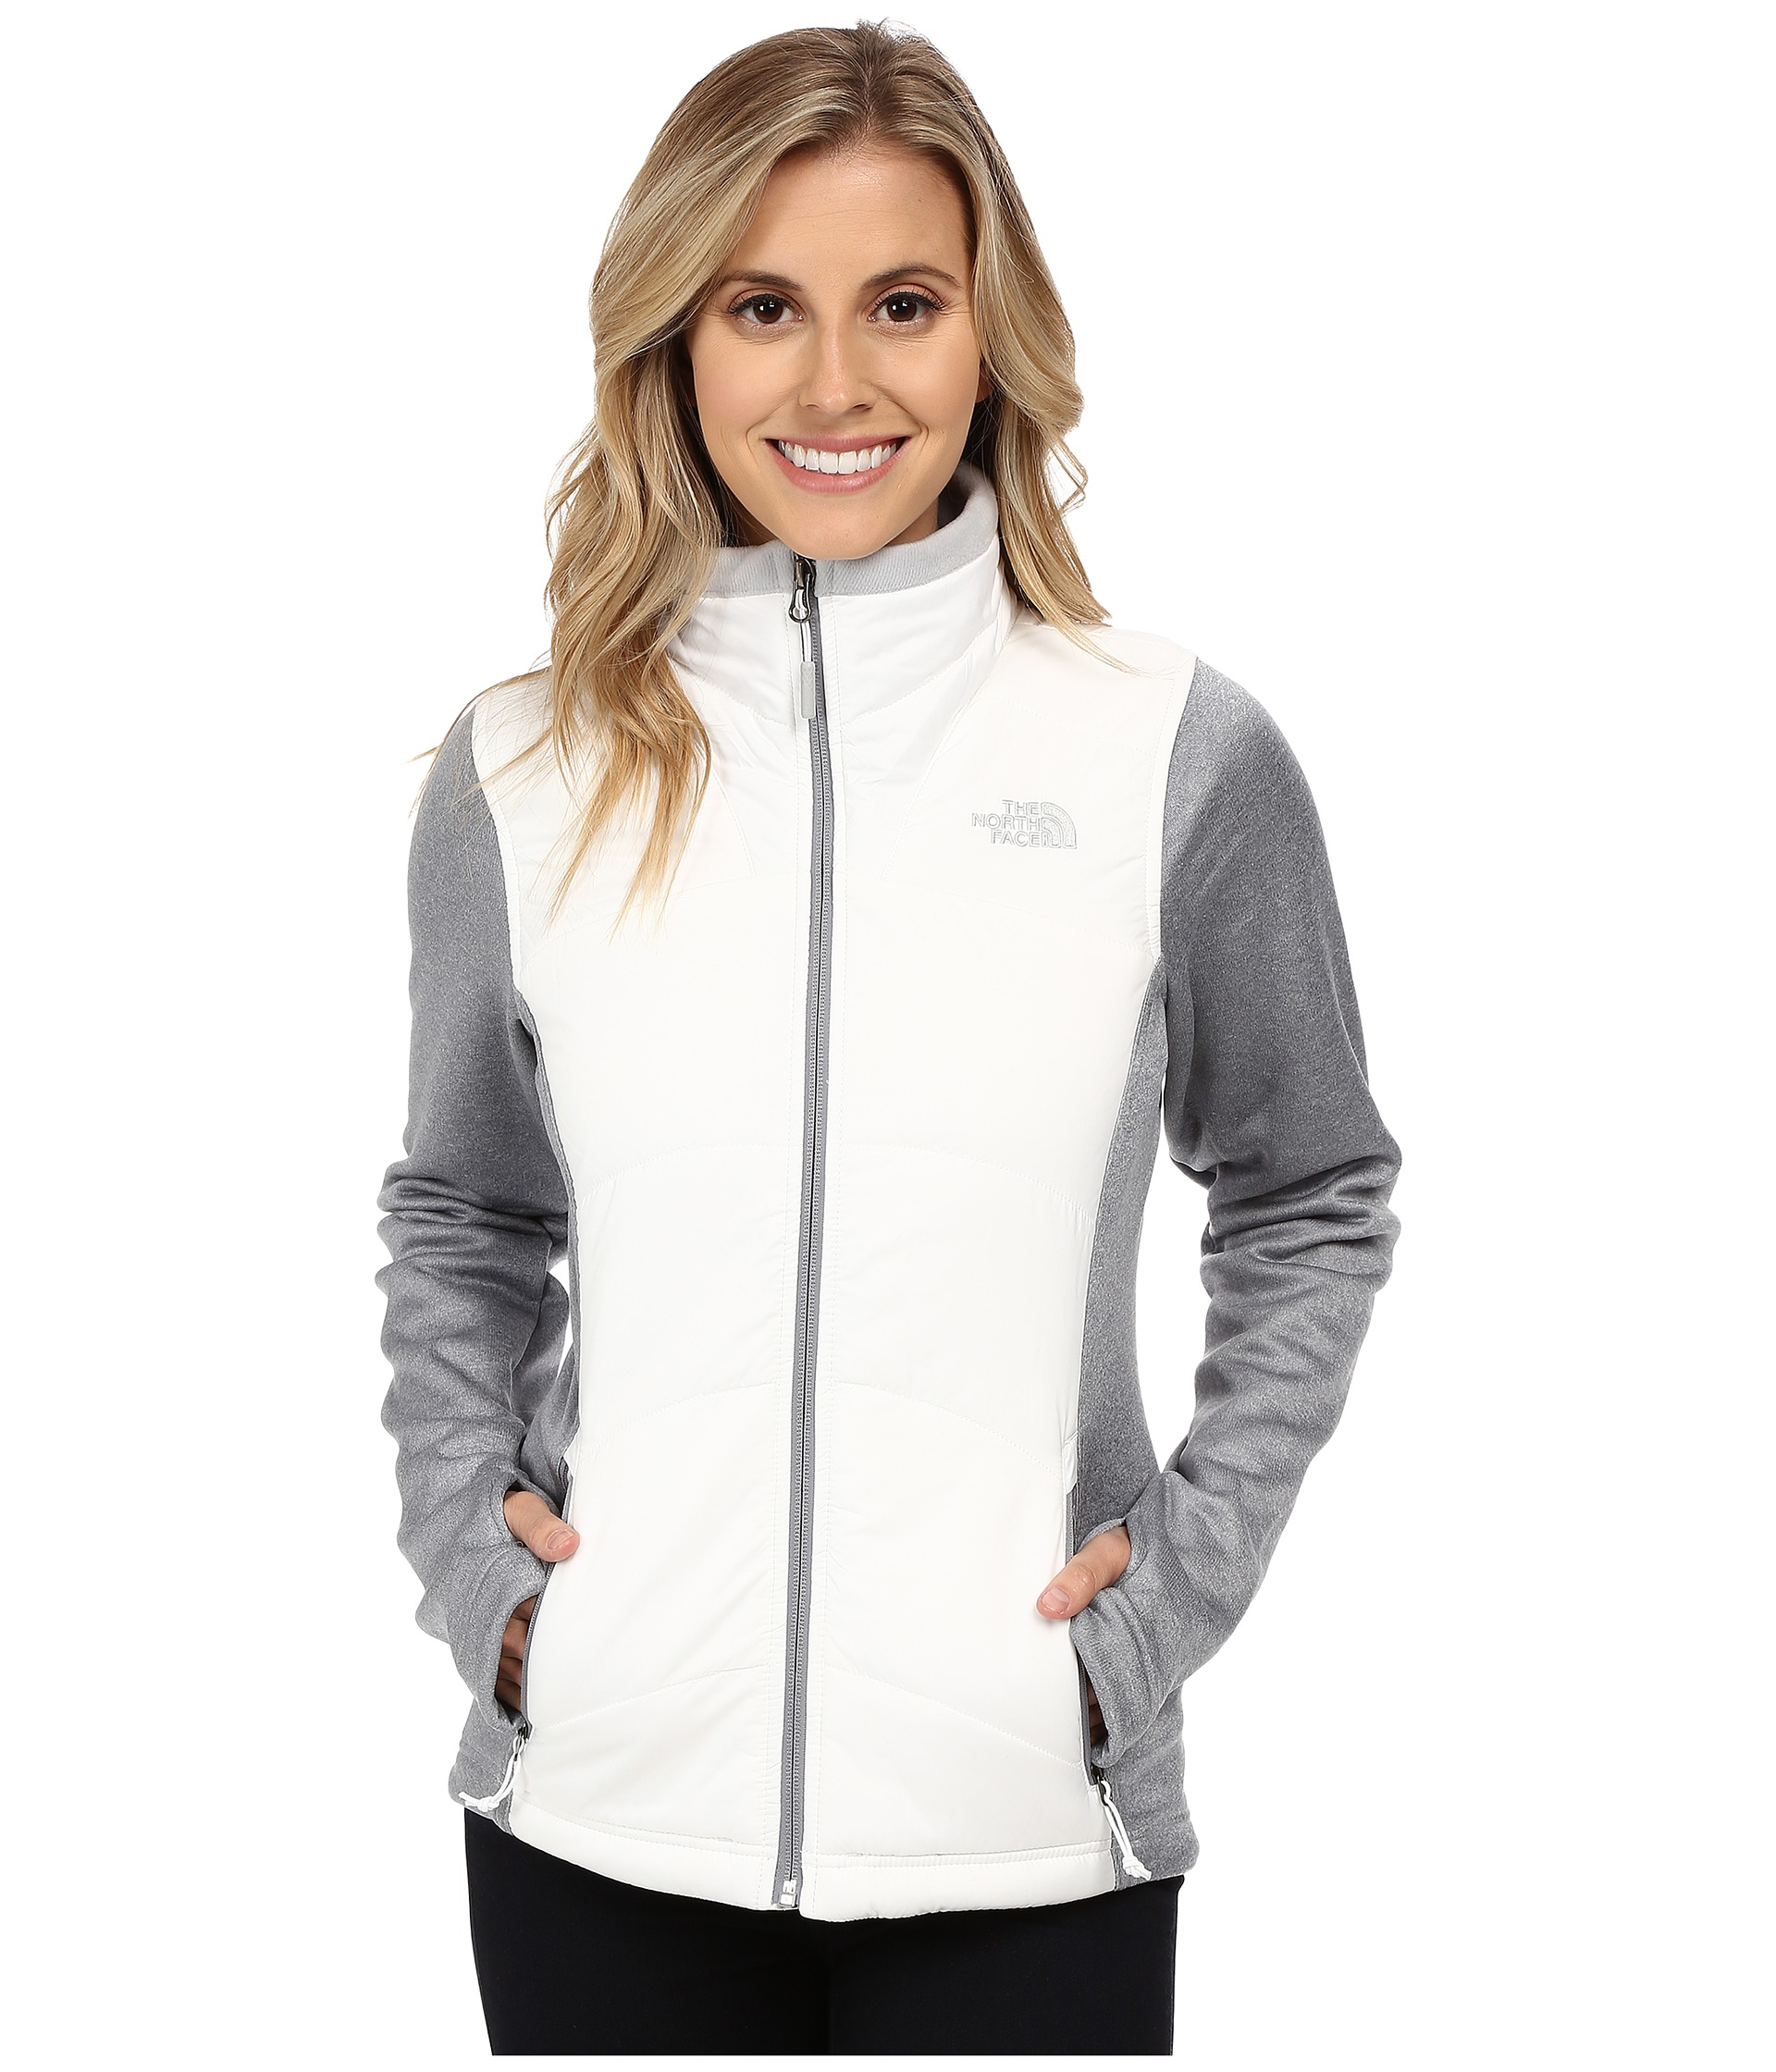 d3ccb954f Women's White Agave Mash-up Jacket